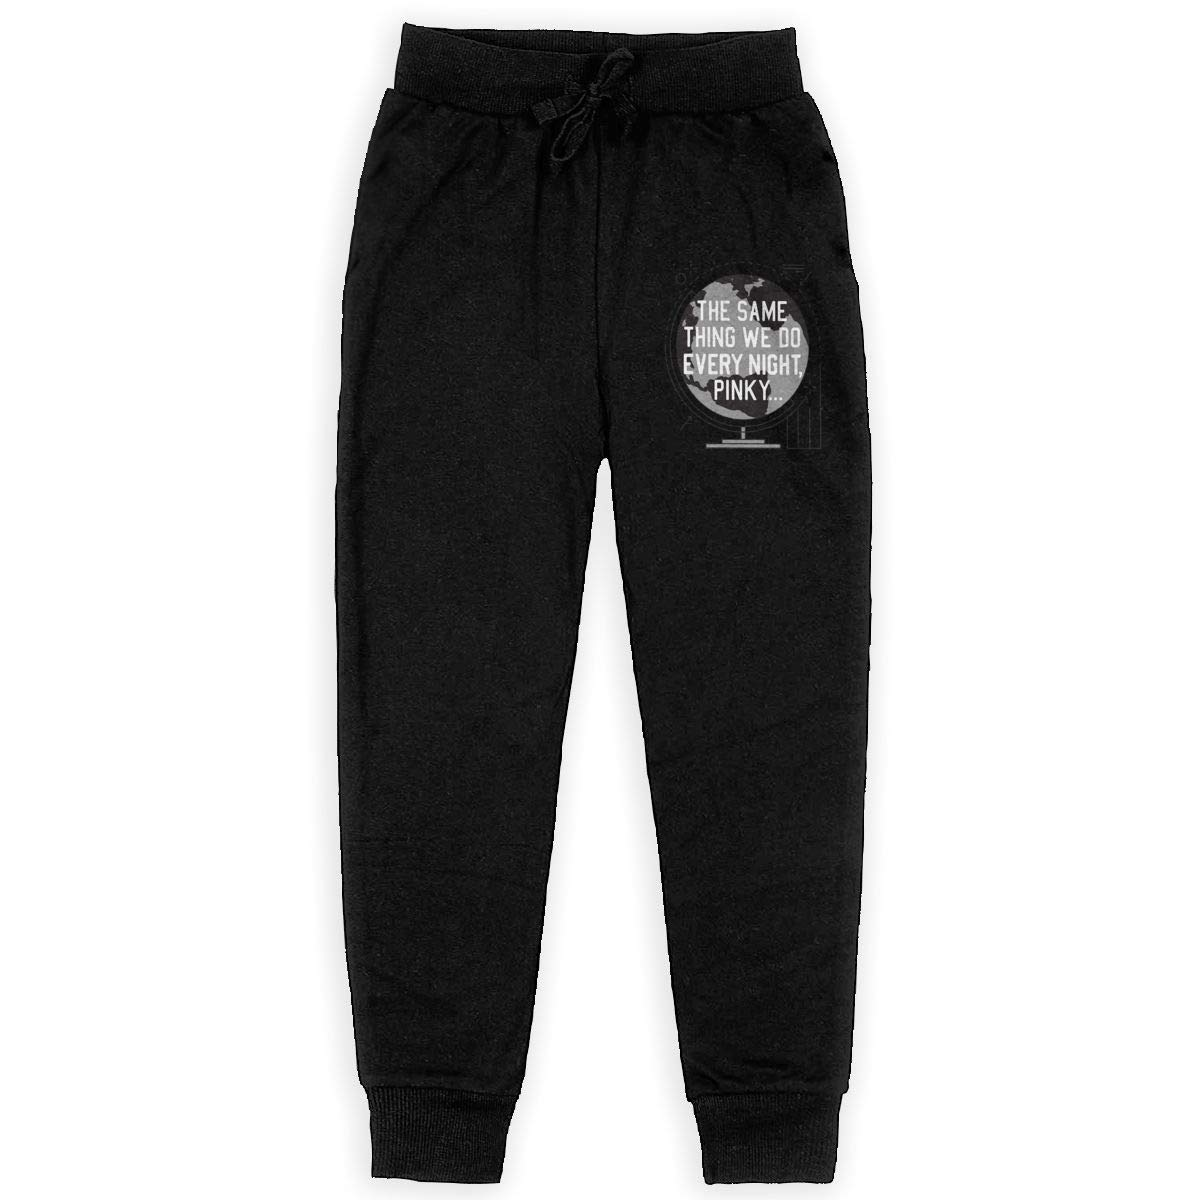 The Same Thing WE DO Every Night Boys Sweatpants,Joggers Sport Training Pants Trousers Black